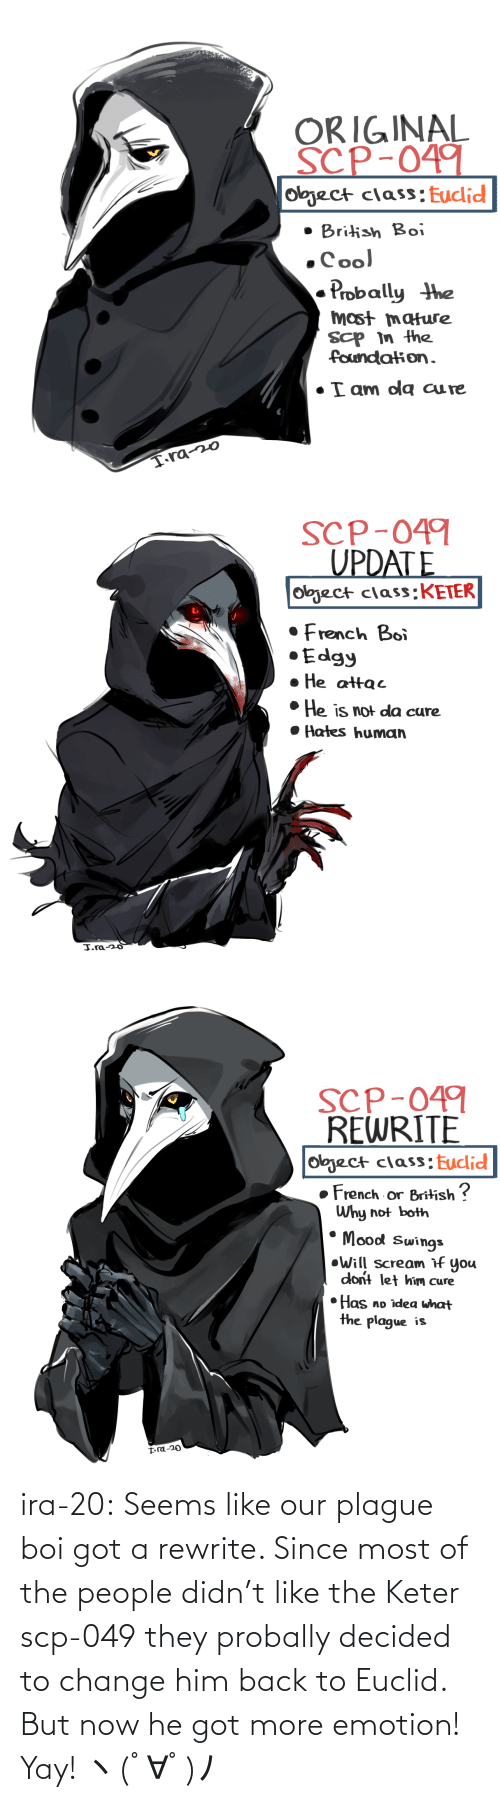 The People: ira-20:  Seems like our plague boi got a rewrite. Since most of the people didn't like the Keter scp-049 they probally decided to change him back to Euclid. But now he got more emotion! Yay! ヽ(゚∀゚)ノ